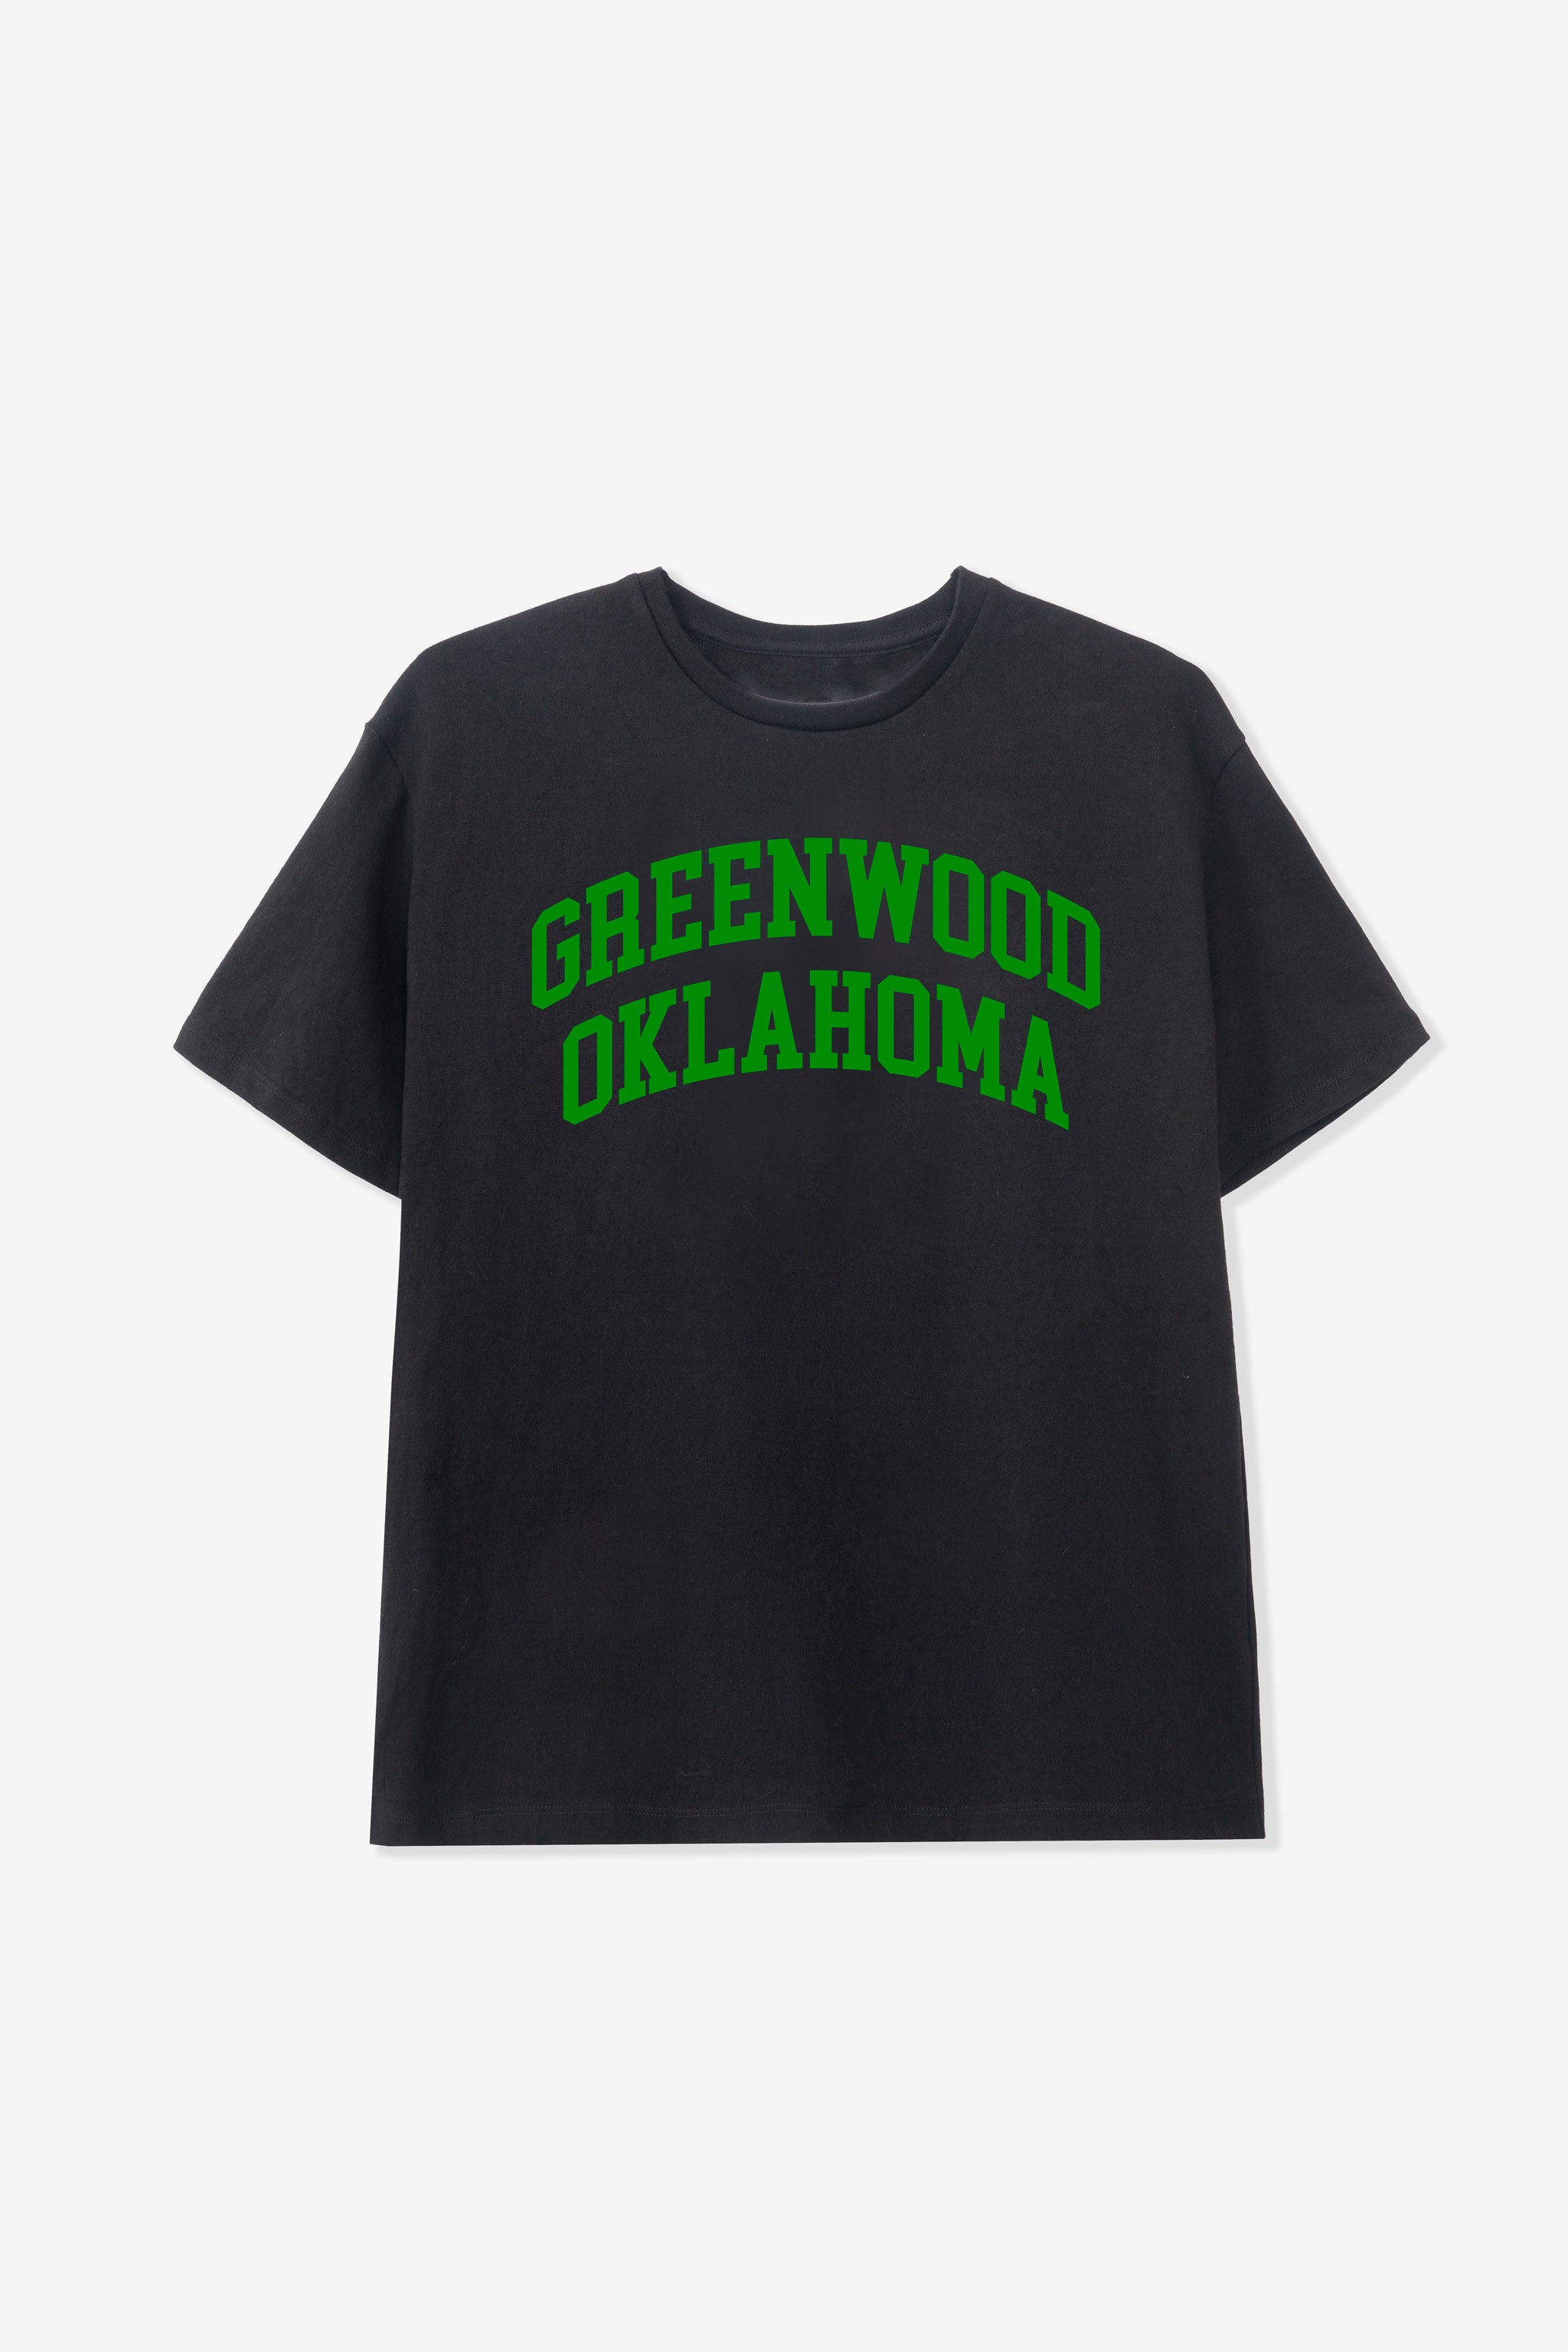 GOODFIGHT BUY BLACK FRIDAY GREENWOOD TEE BLACK